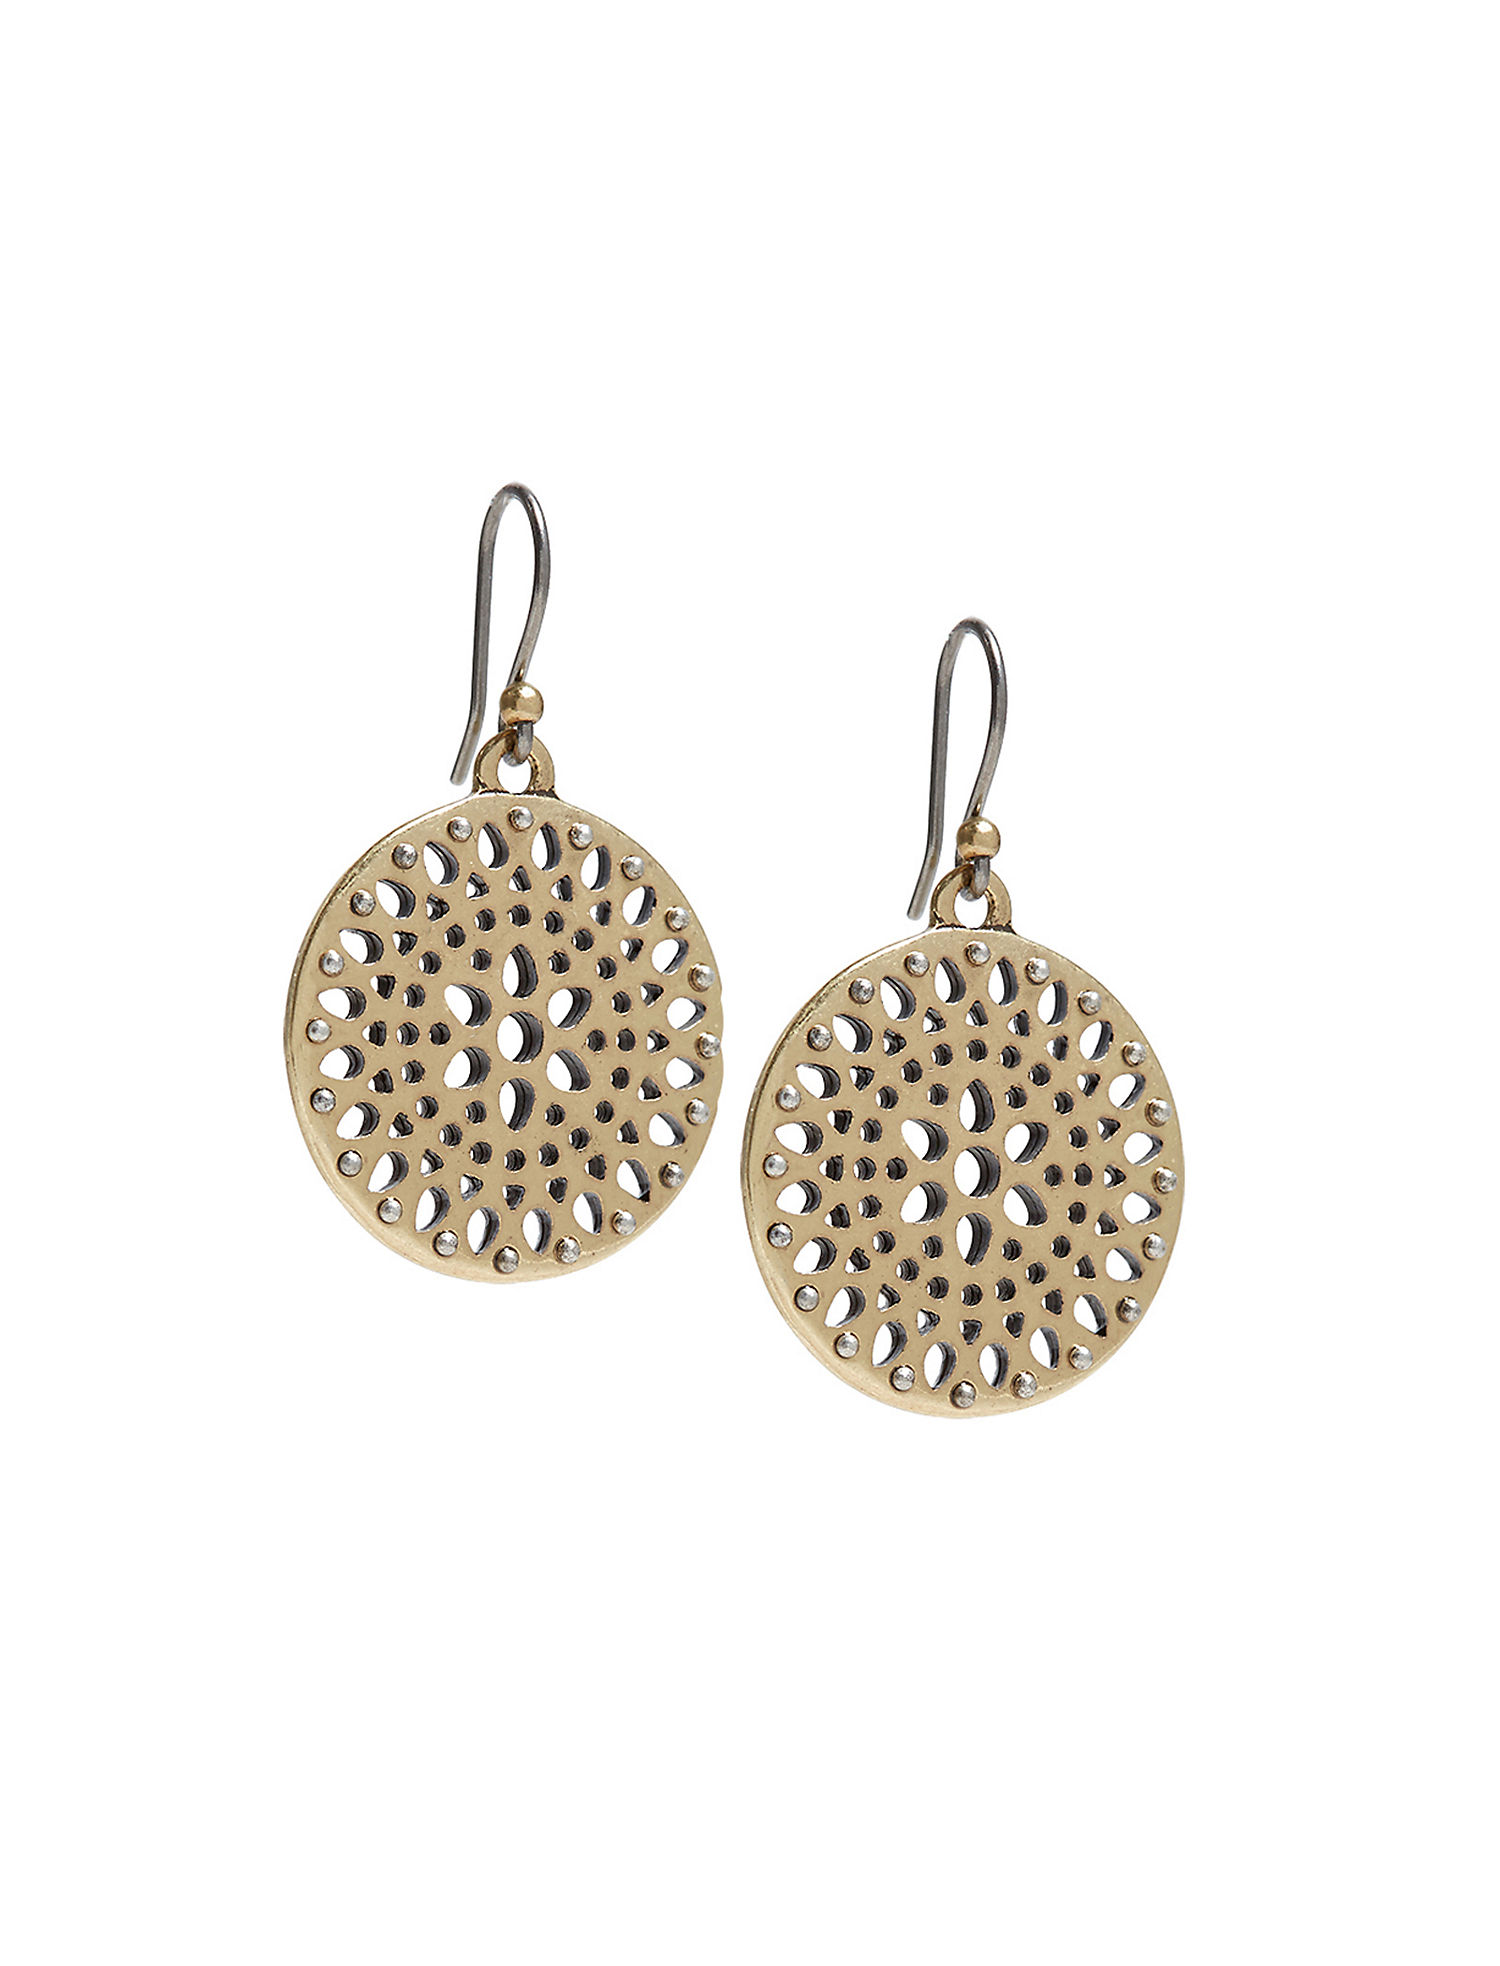 enchanting kalaniketan work kn earrings com with from beautiful cream color